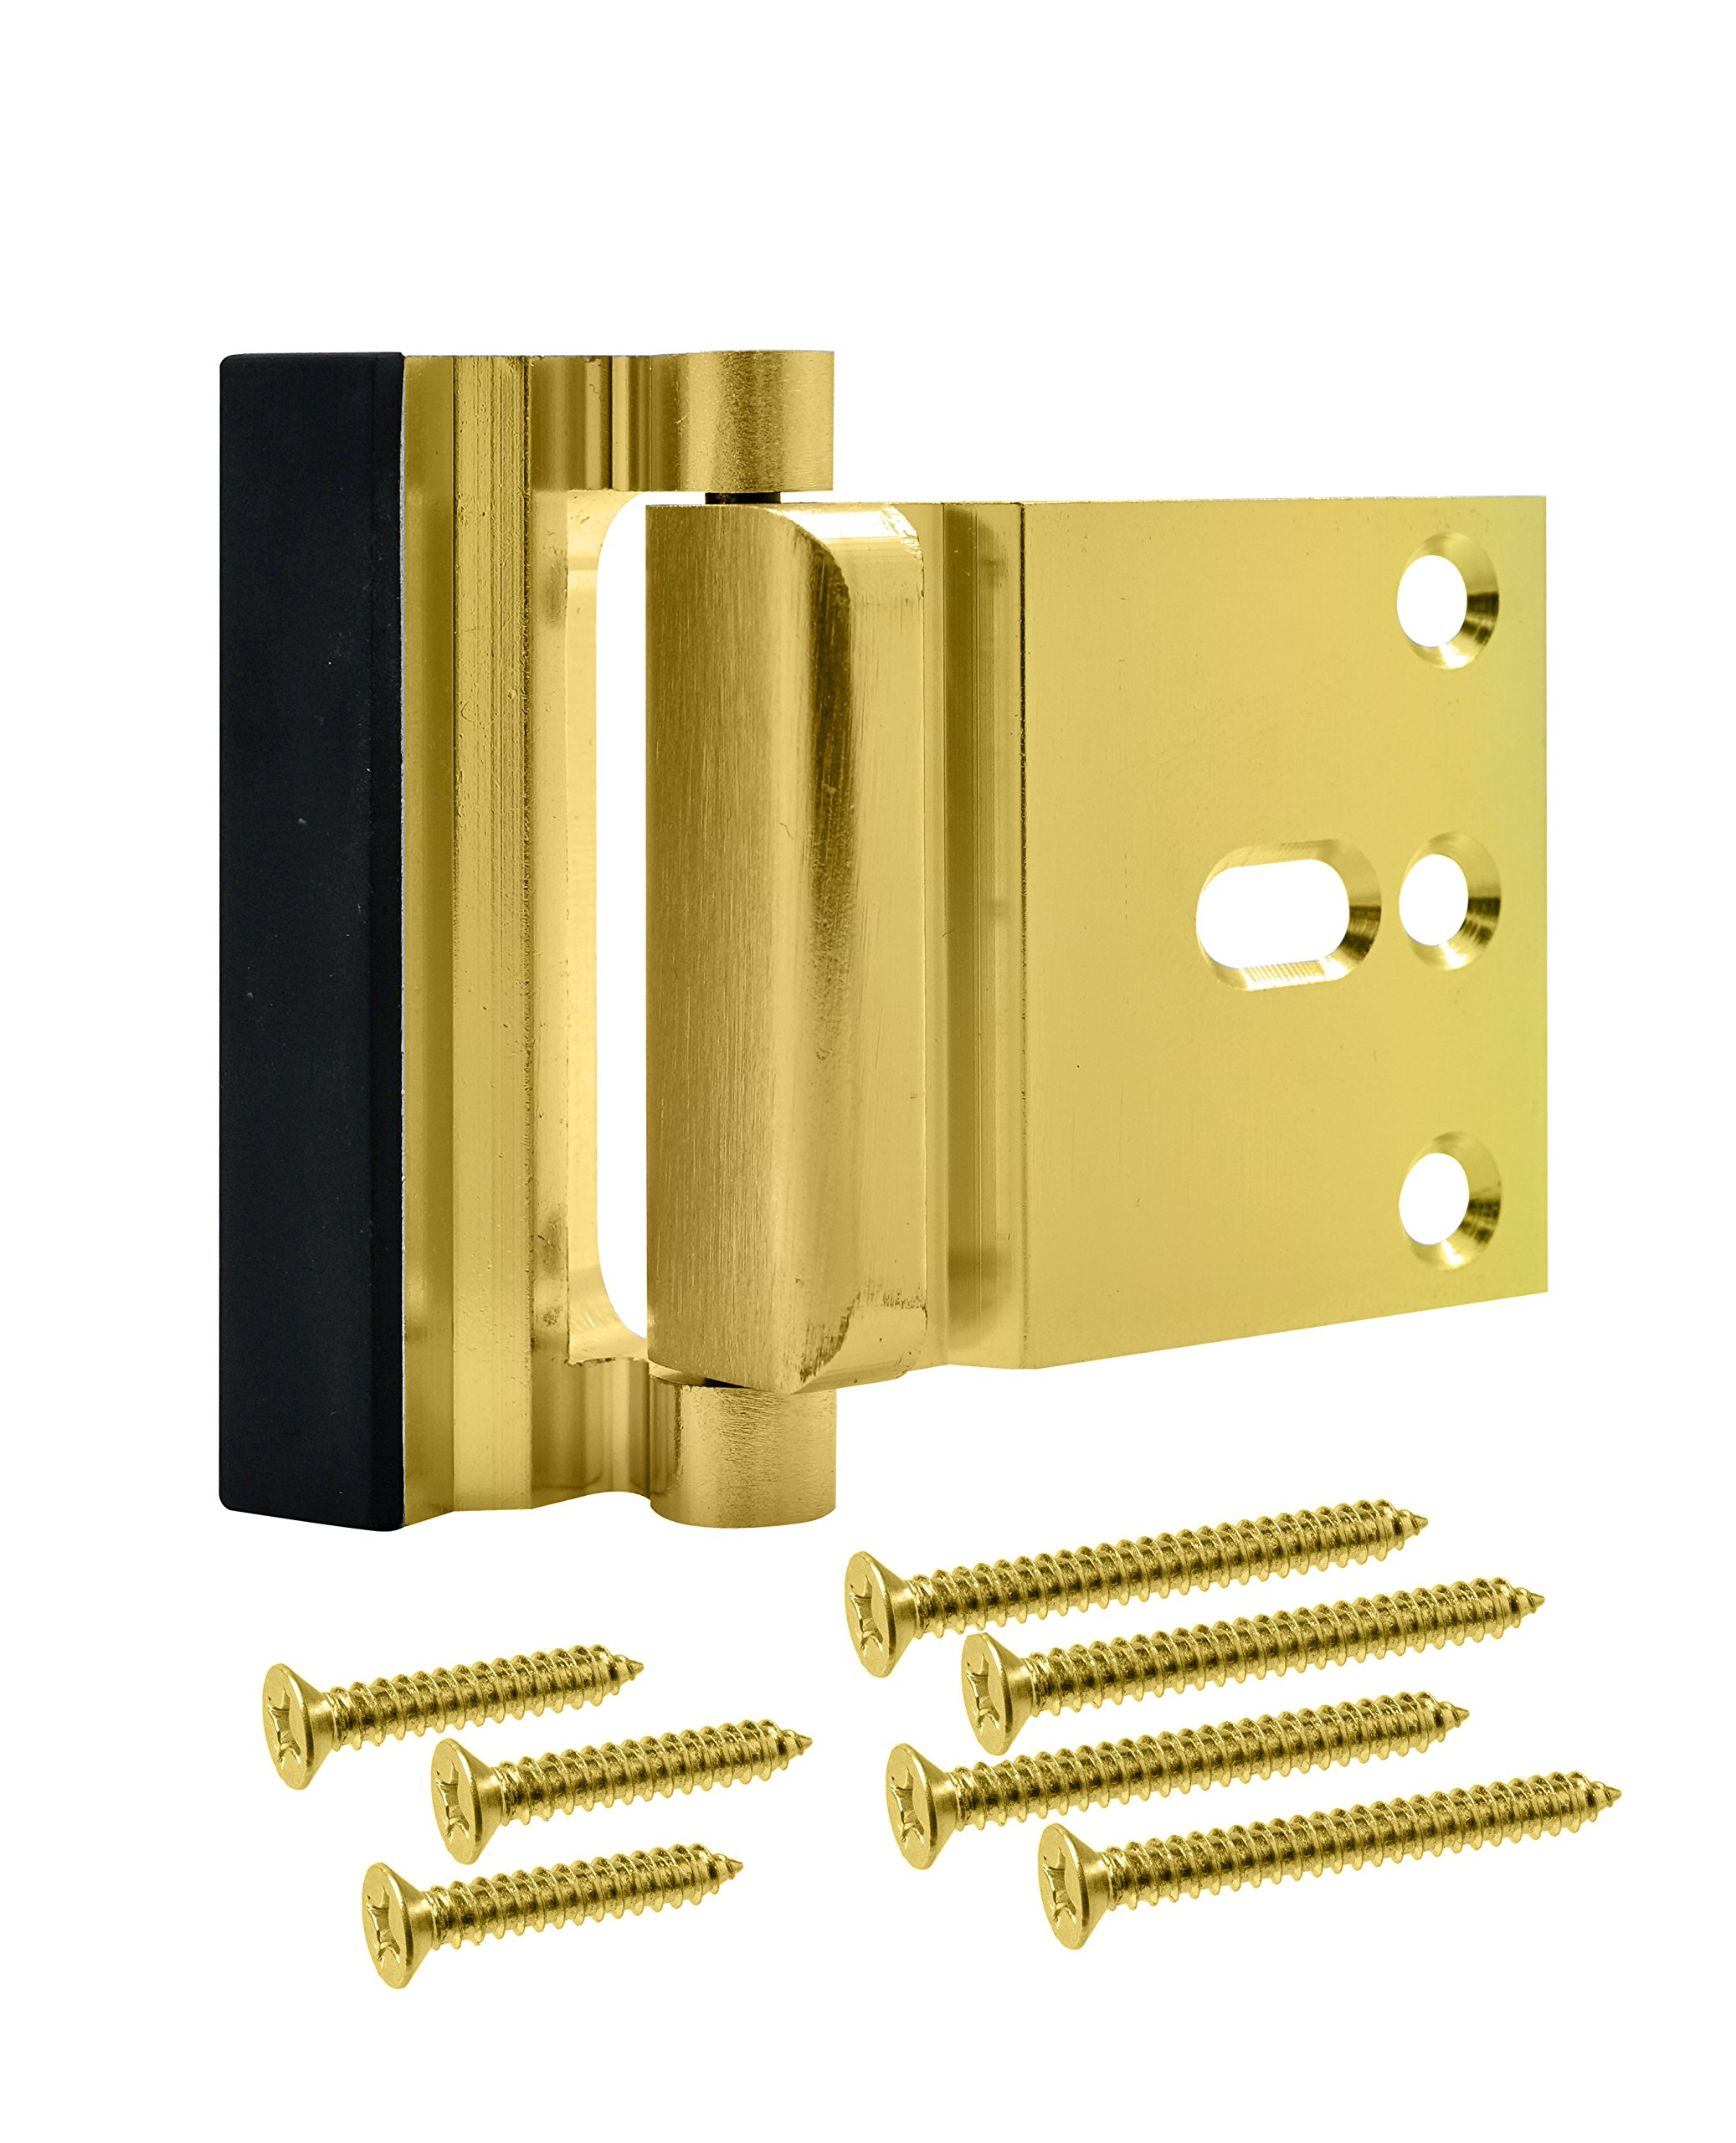 Lamosh Door Reinforcement Lock – For extra safety to your home and prevent unauthorized entry. (Brass)